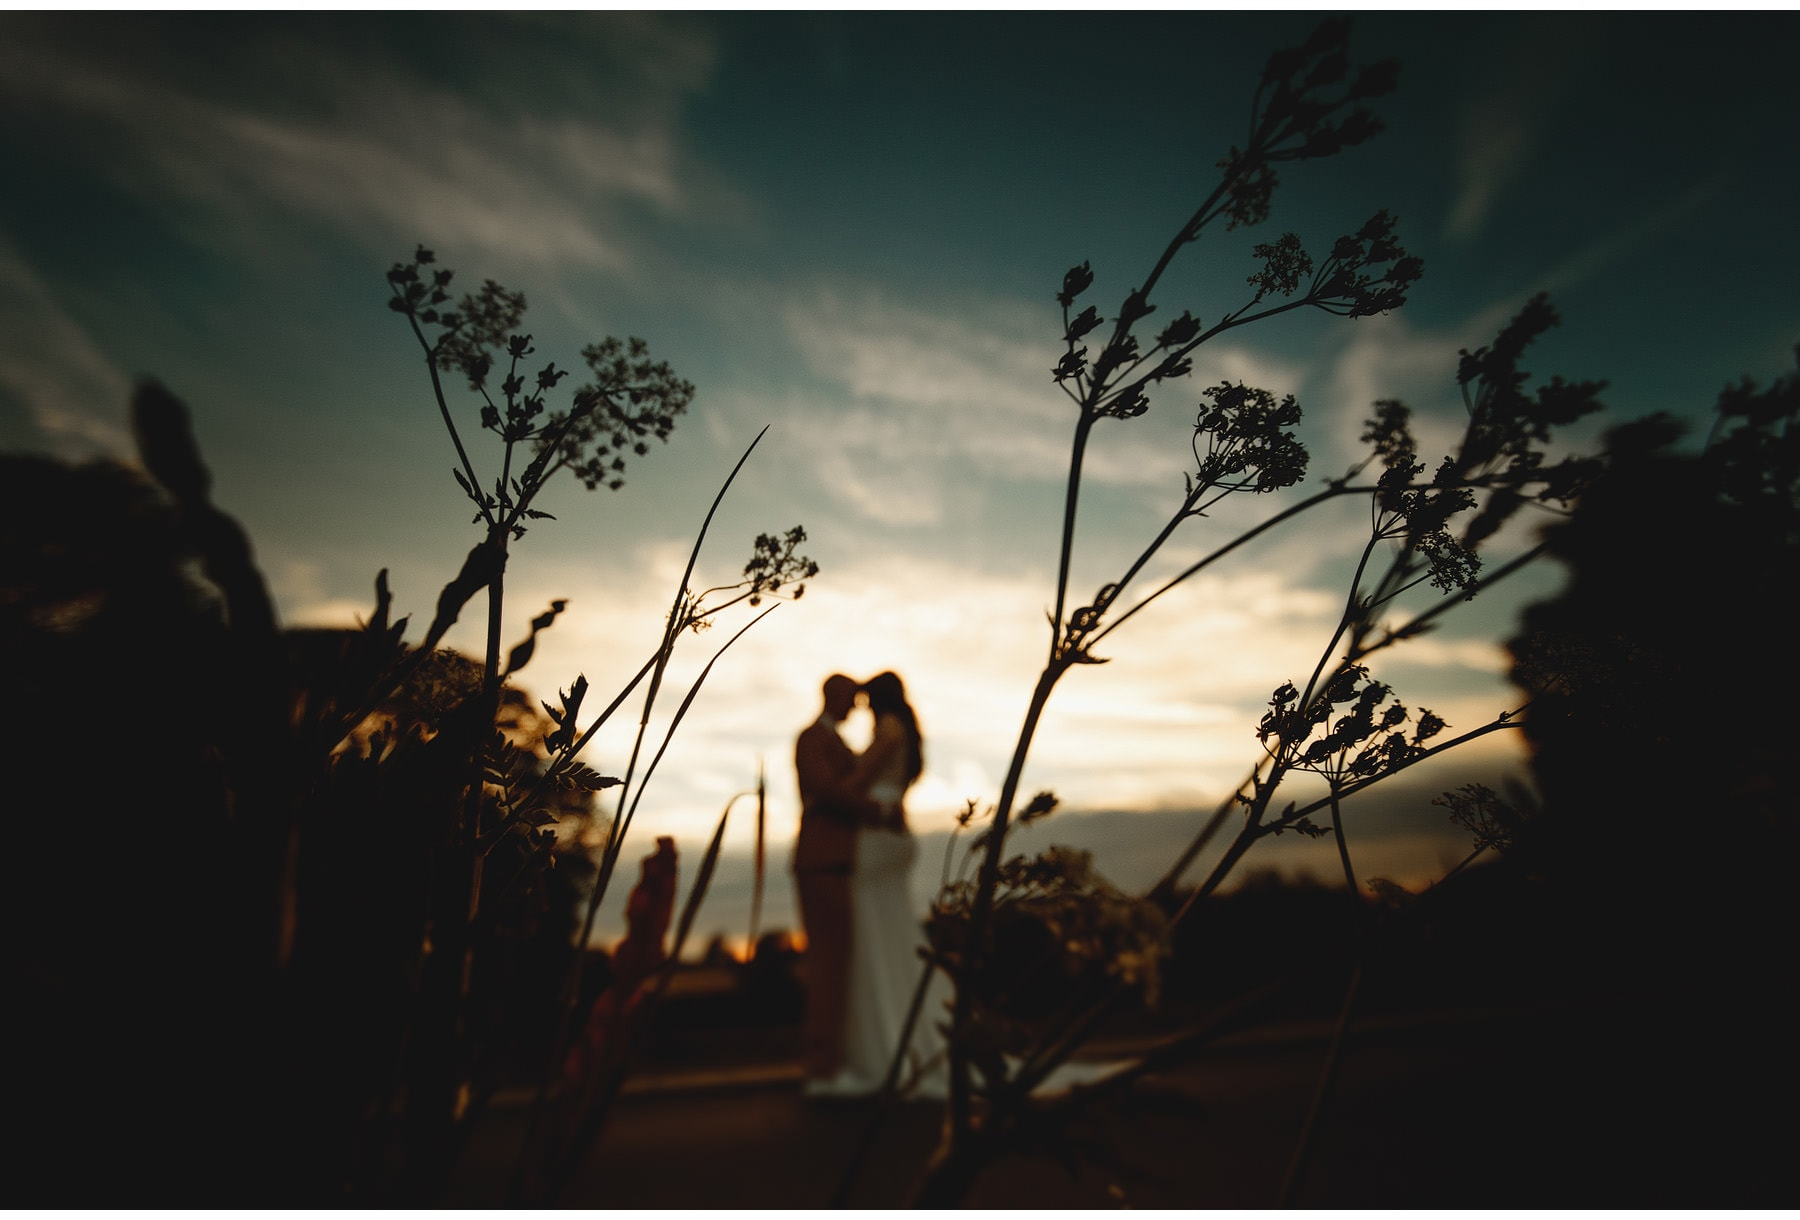 the bride & groom against the evening sky